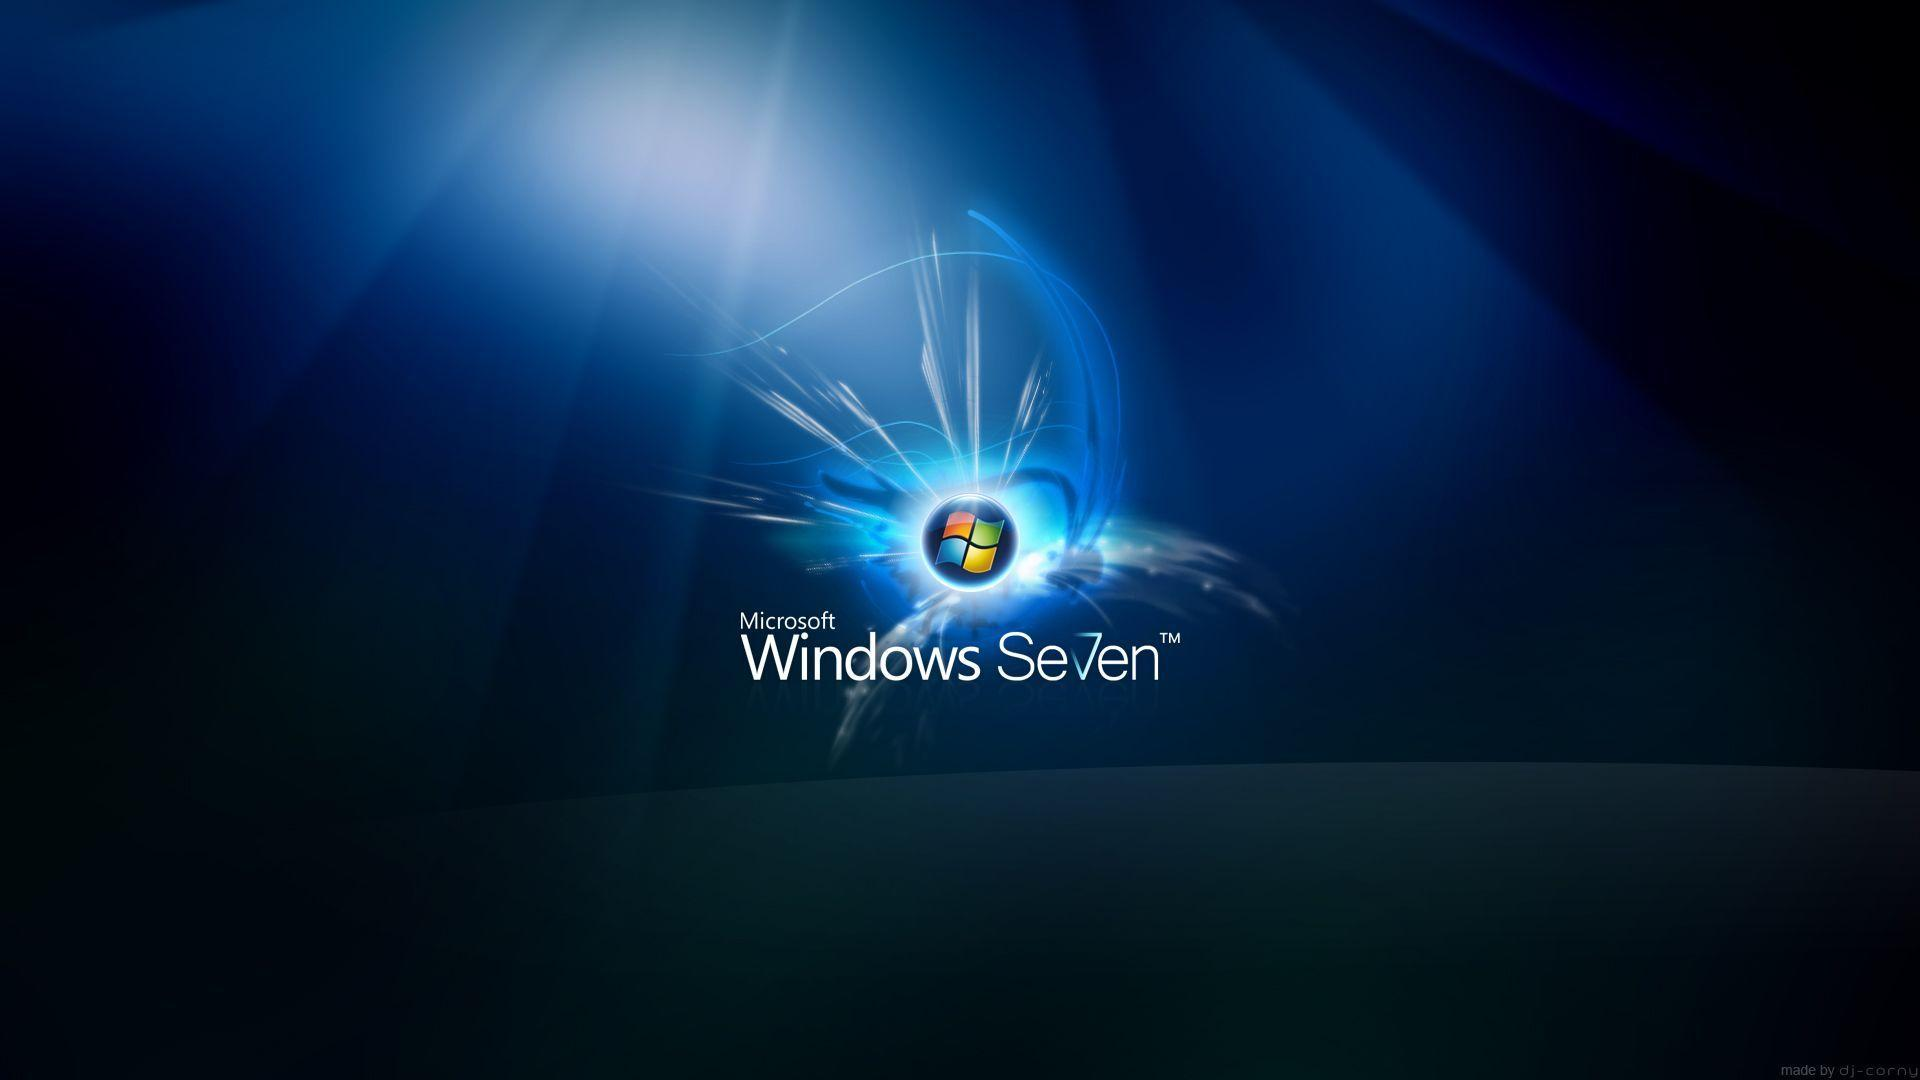 Window 7 Full HD Wallpapers